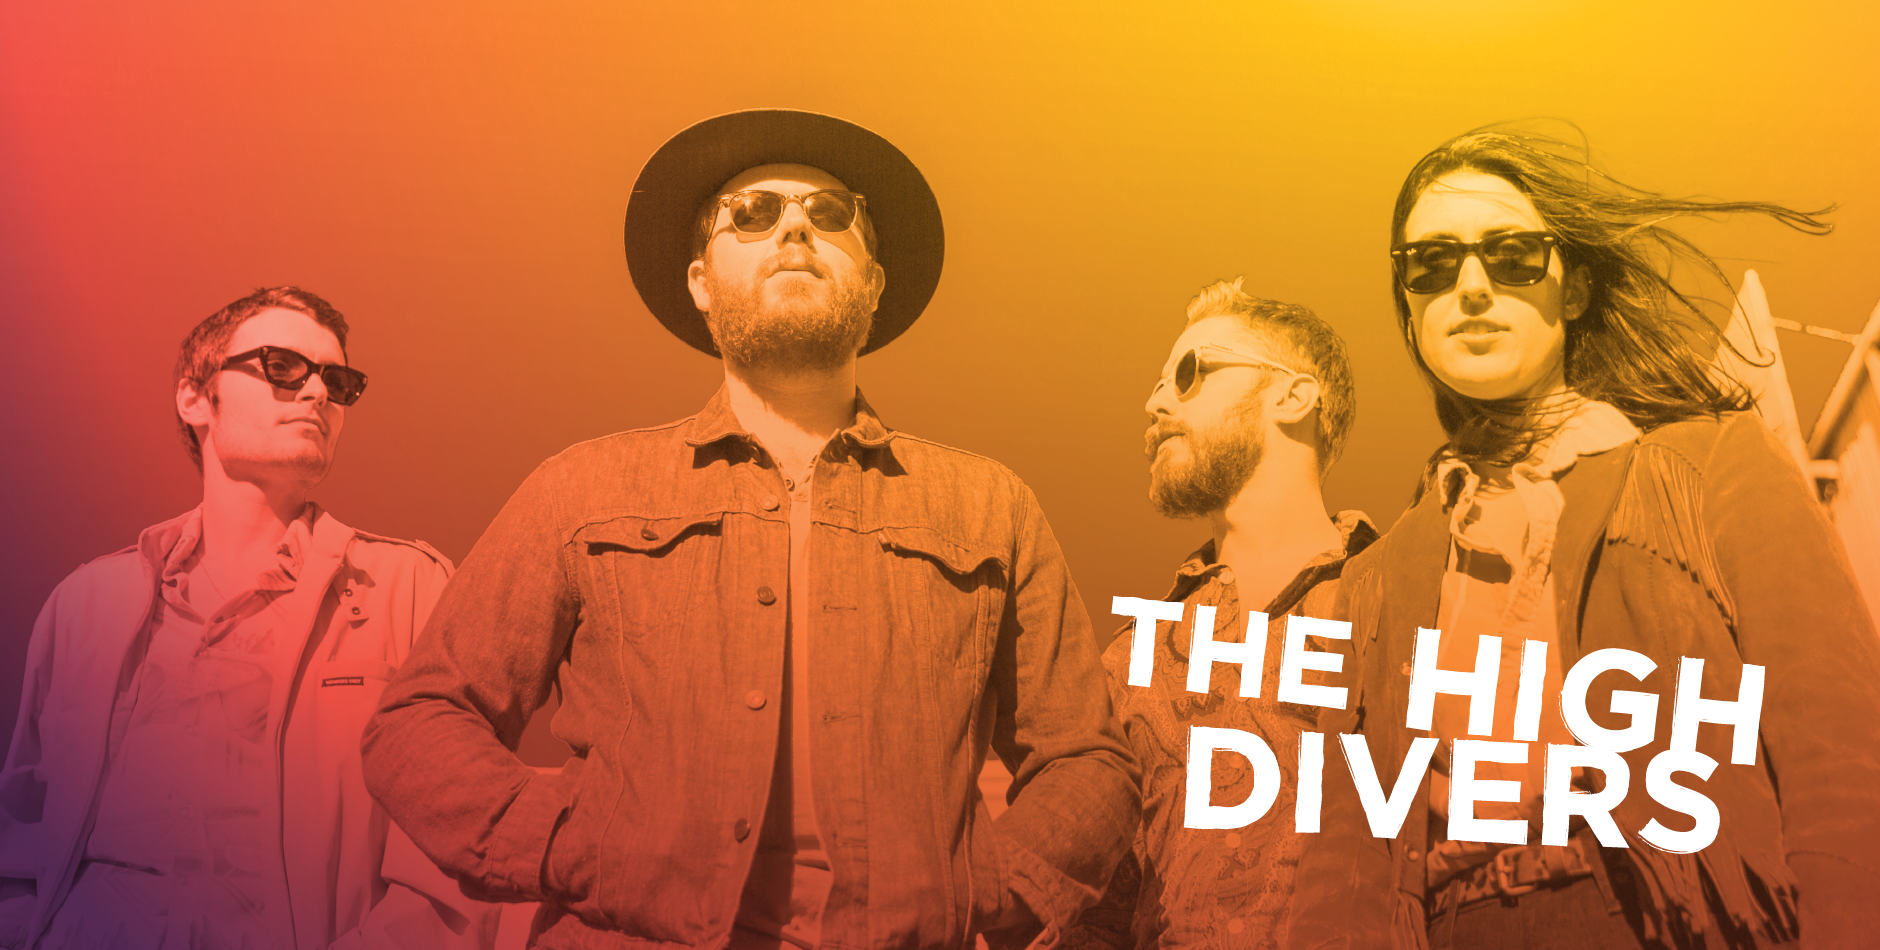 The High Divers band picture